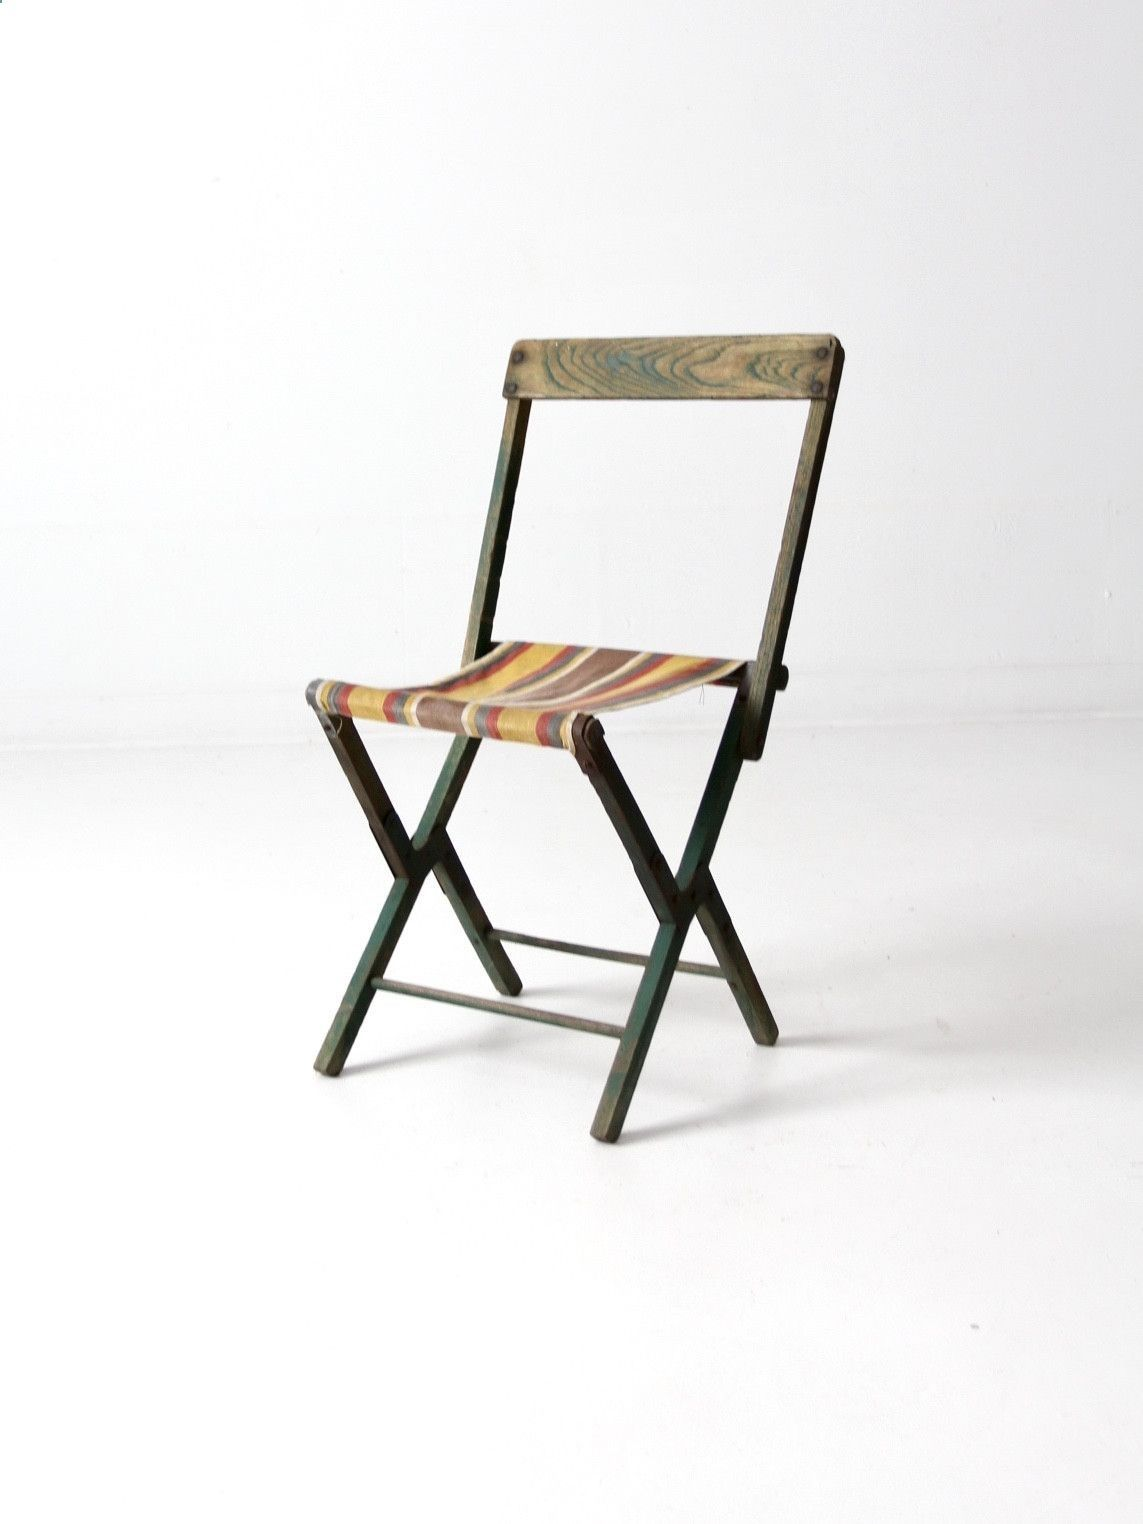 Vintage camping chair - Vintage Folding Camp Chair